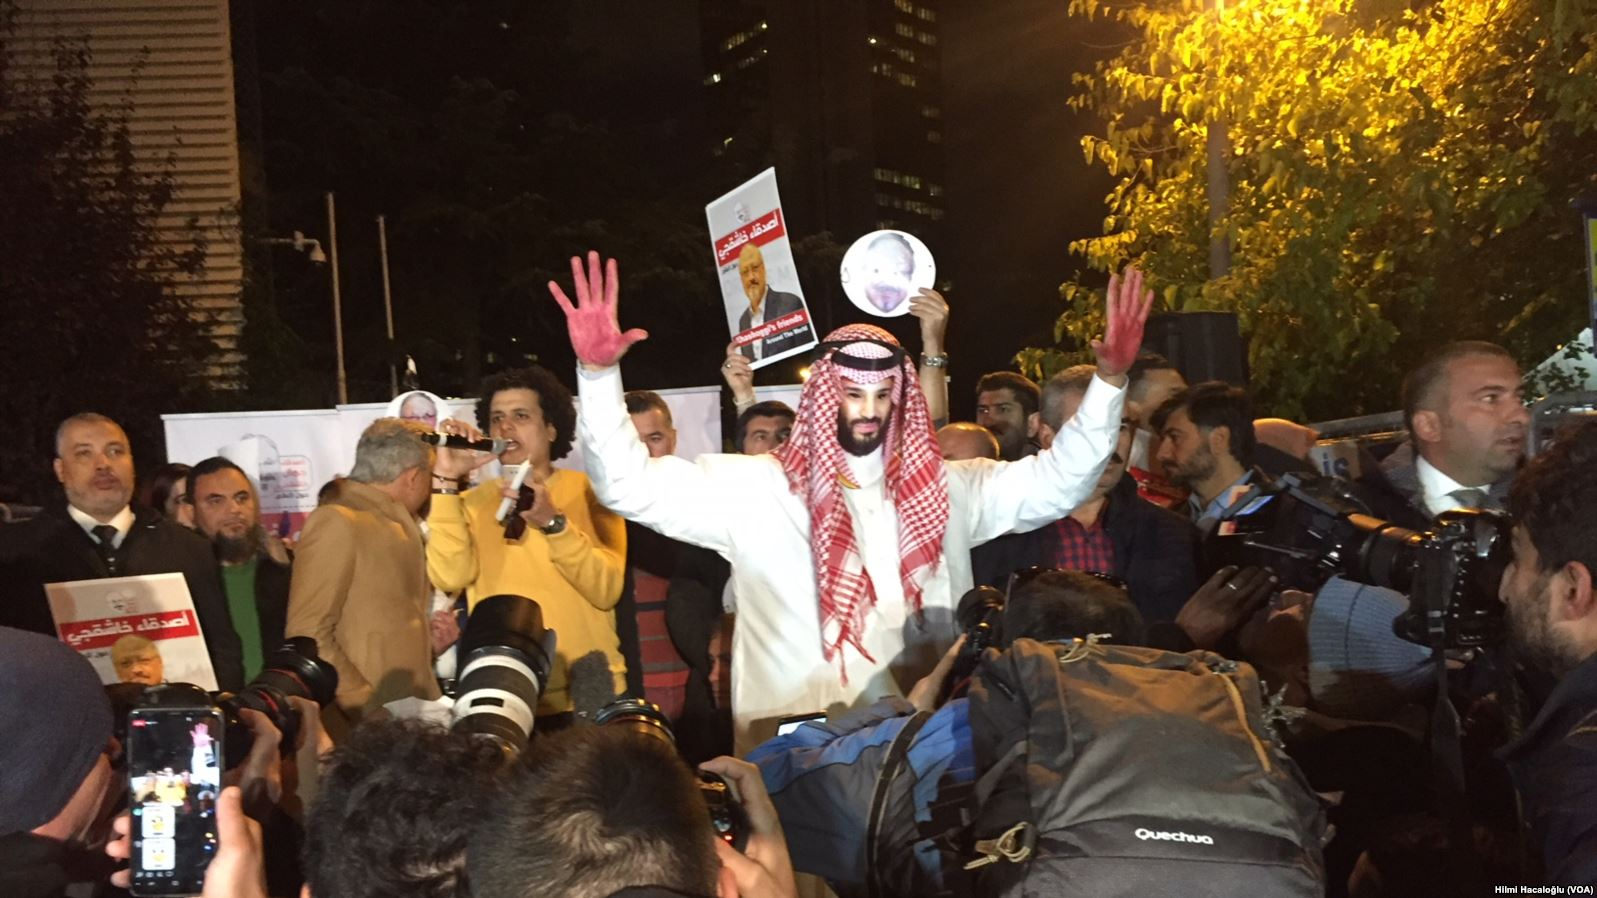 Istanbul protesters outside Consulate General of Saudi Arabia following the murder of Khashoggi. (Hilmi Hacaloglu, VOA via Wikimedia Commons)